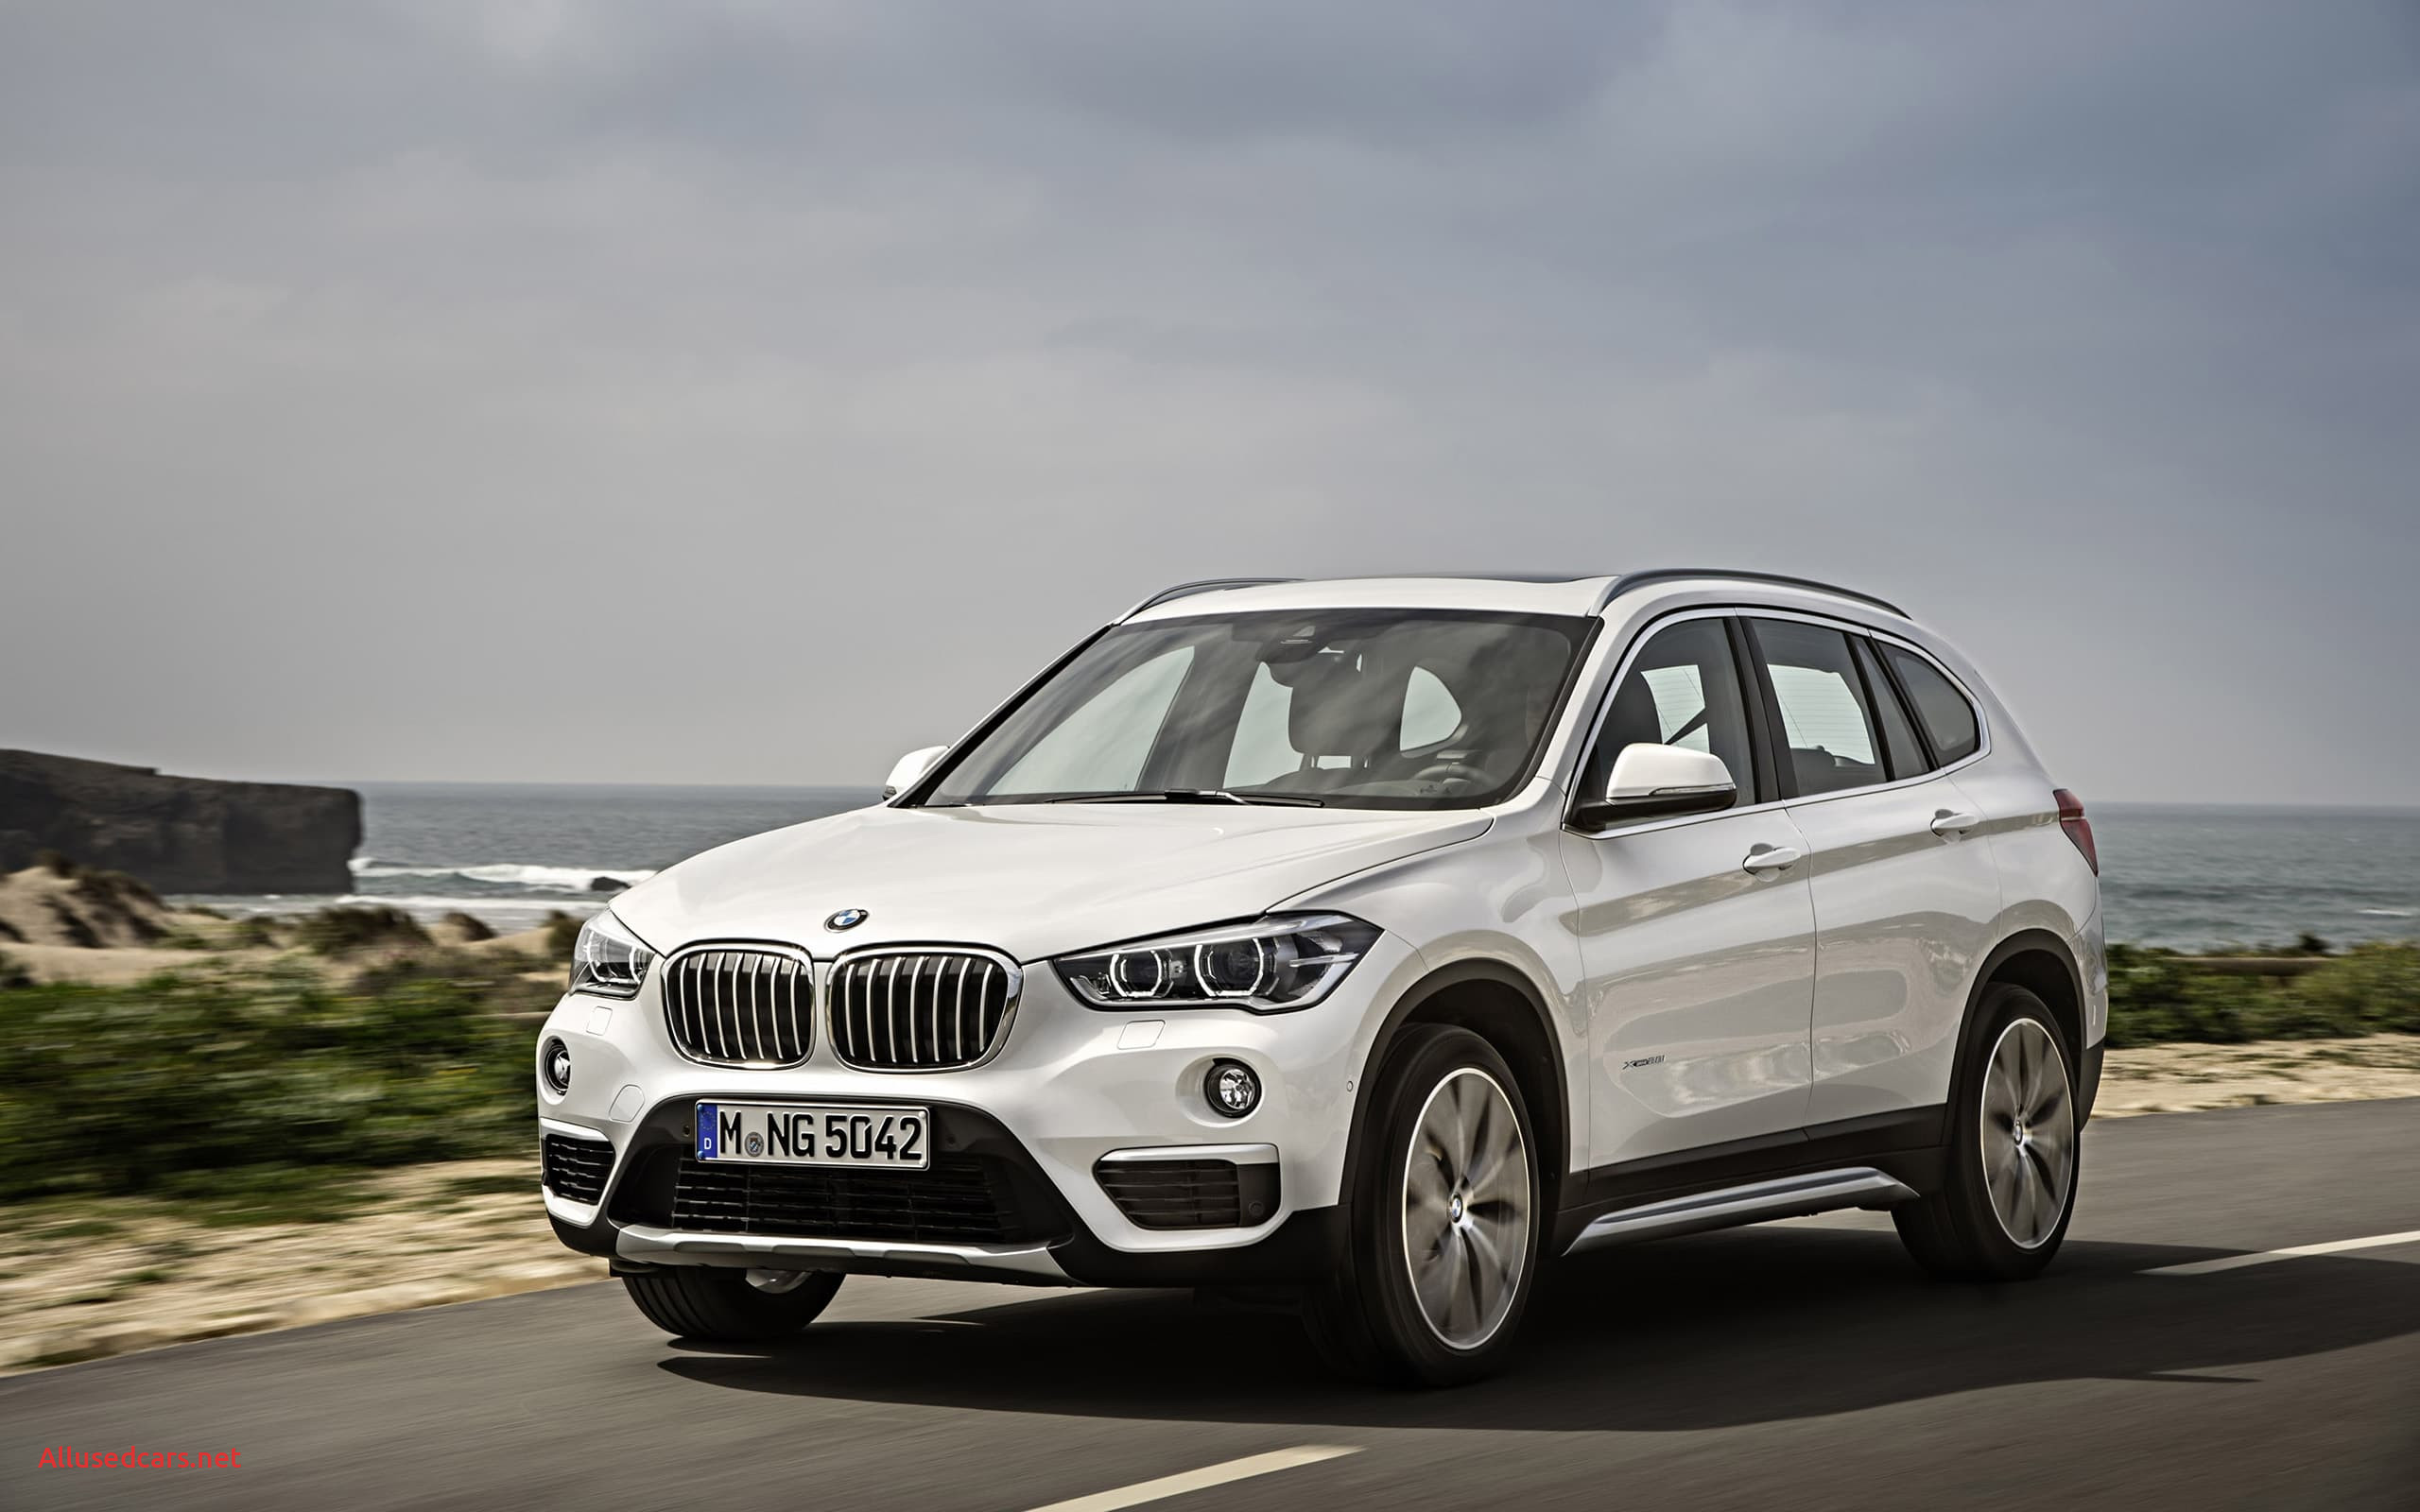 69 bmw x1 2016 wallpapers 2018 bmw x1 msrp